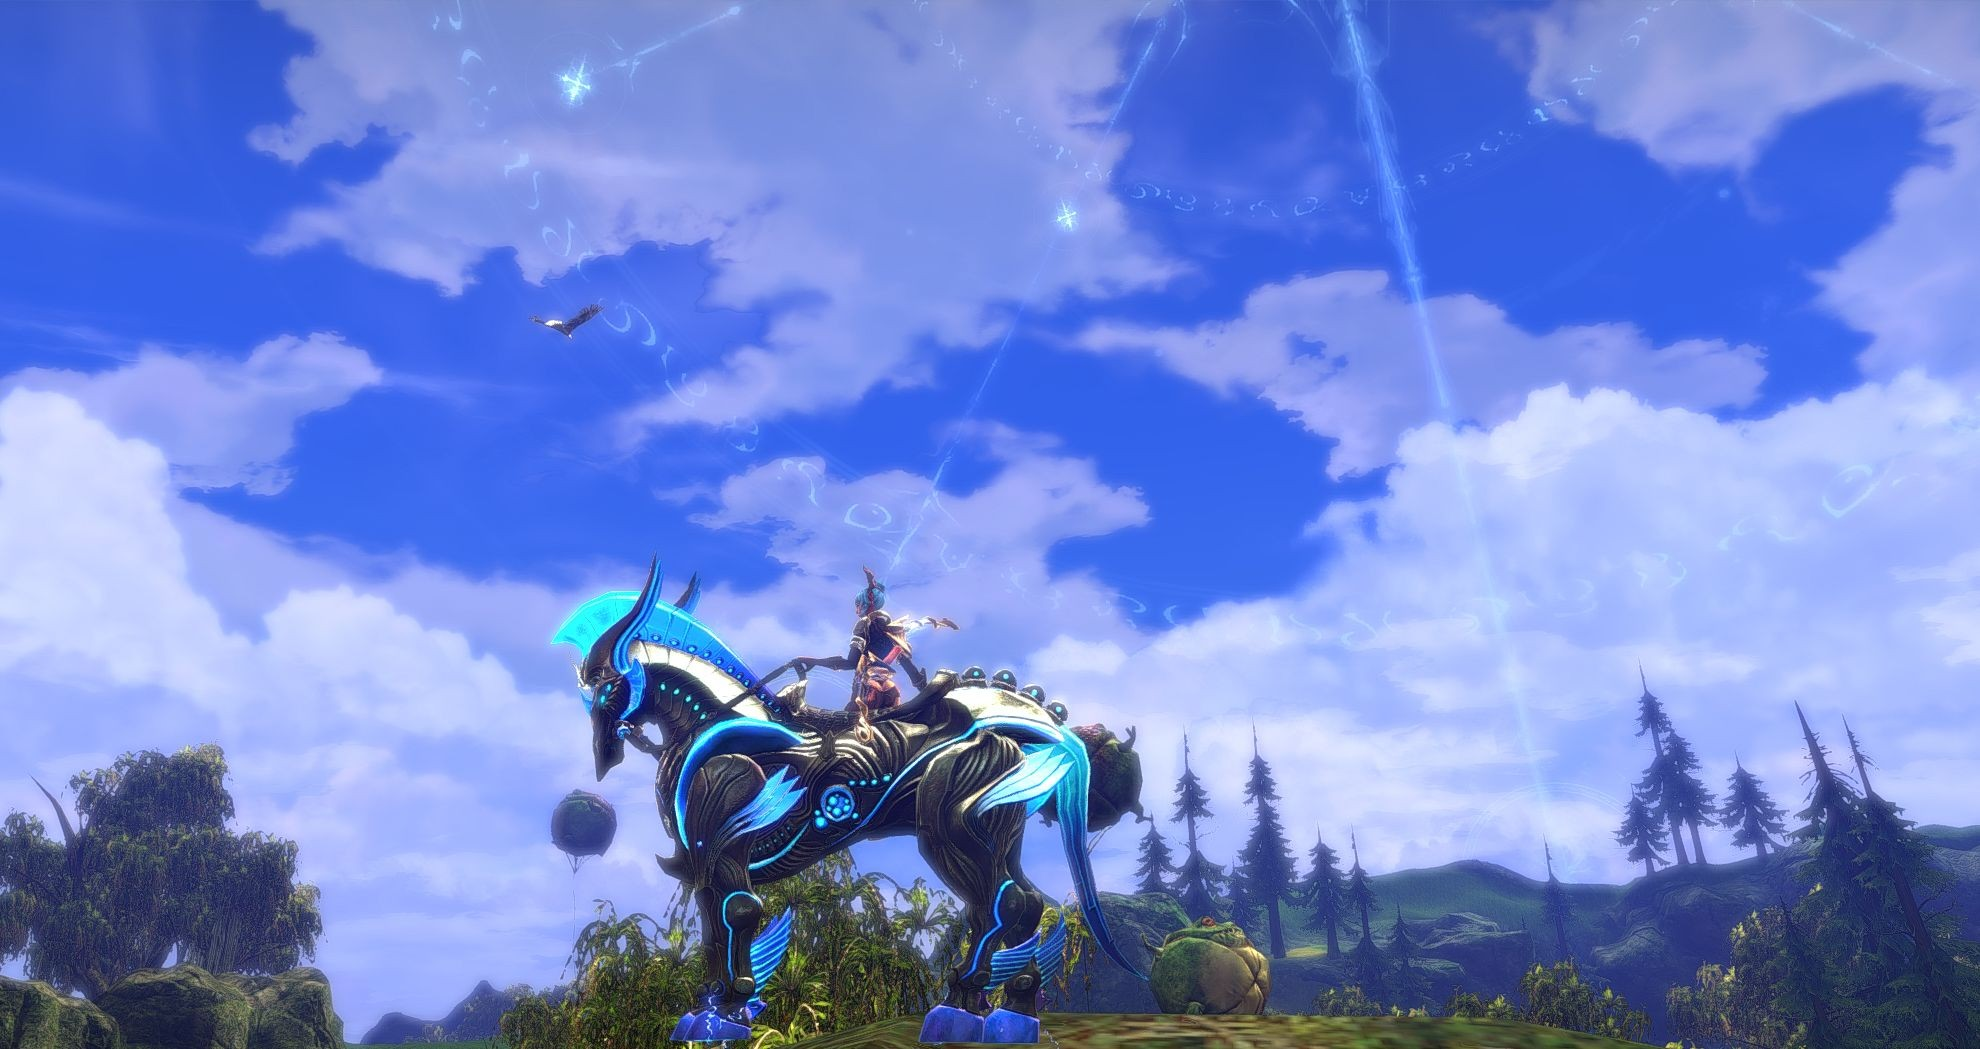 TERA: Rising - Chillaxing on the Terminus mount. Forgot to CTRL-Z, so cropped it to the center monitor.